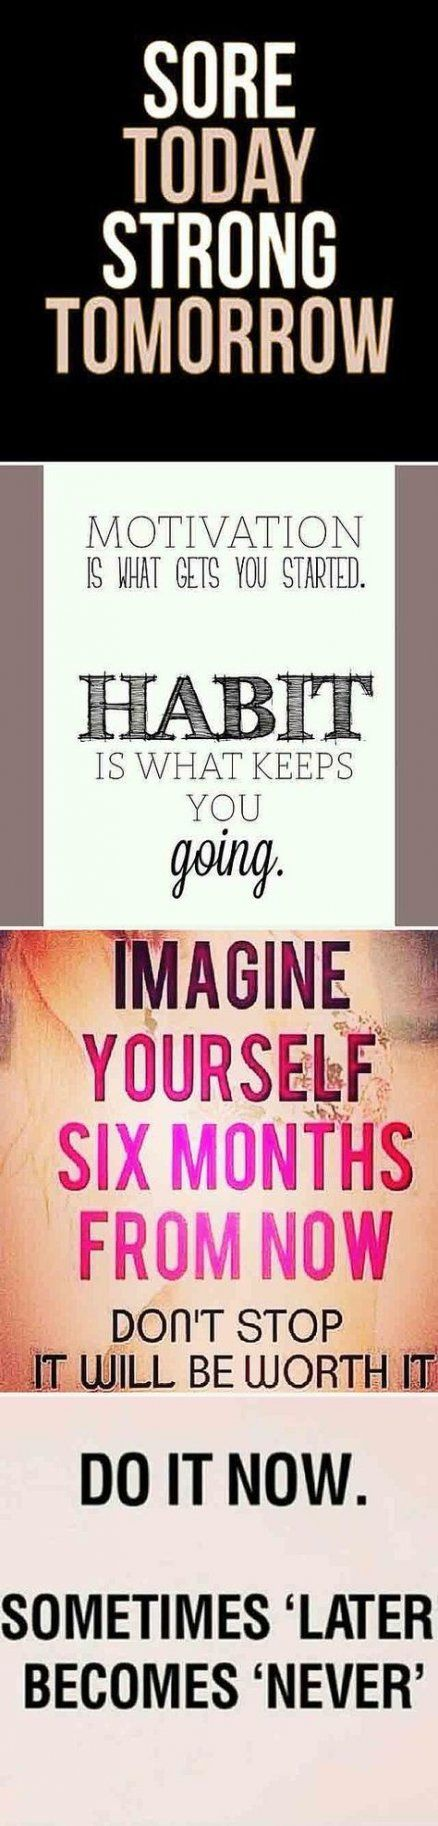 Fitness motivacin quotes inspiration skinny 56 ideas #quotes #fitness